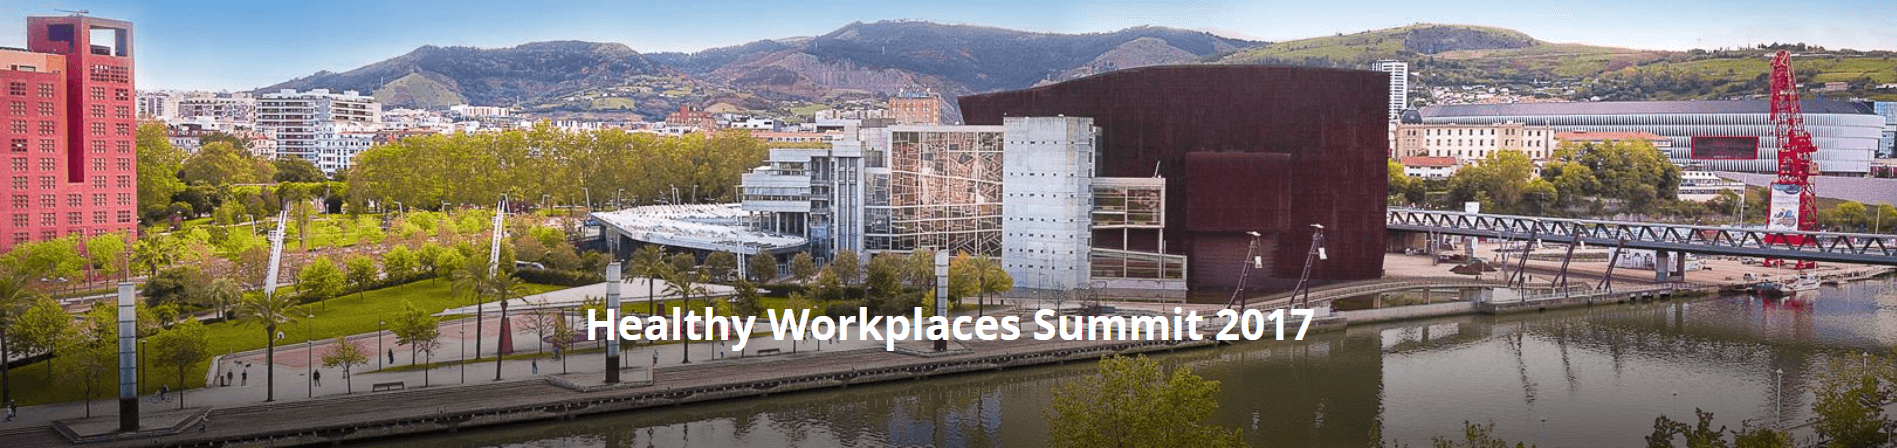 Healthy Workplaces Summit 2017